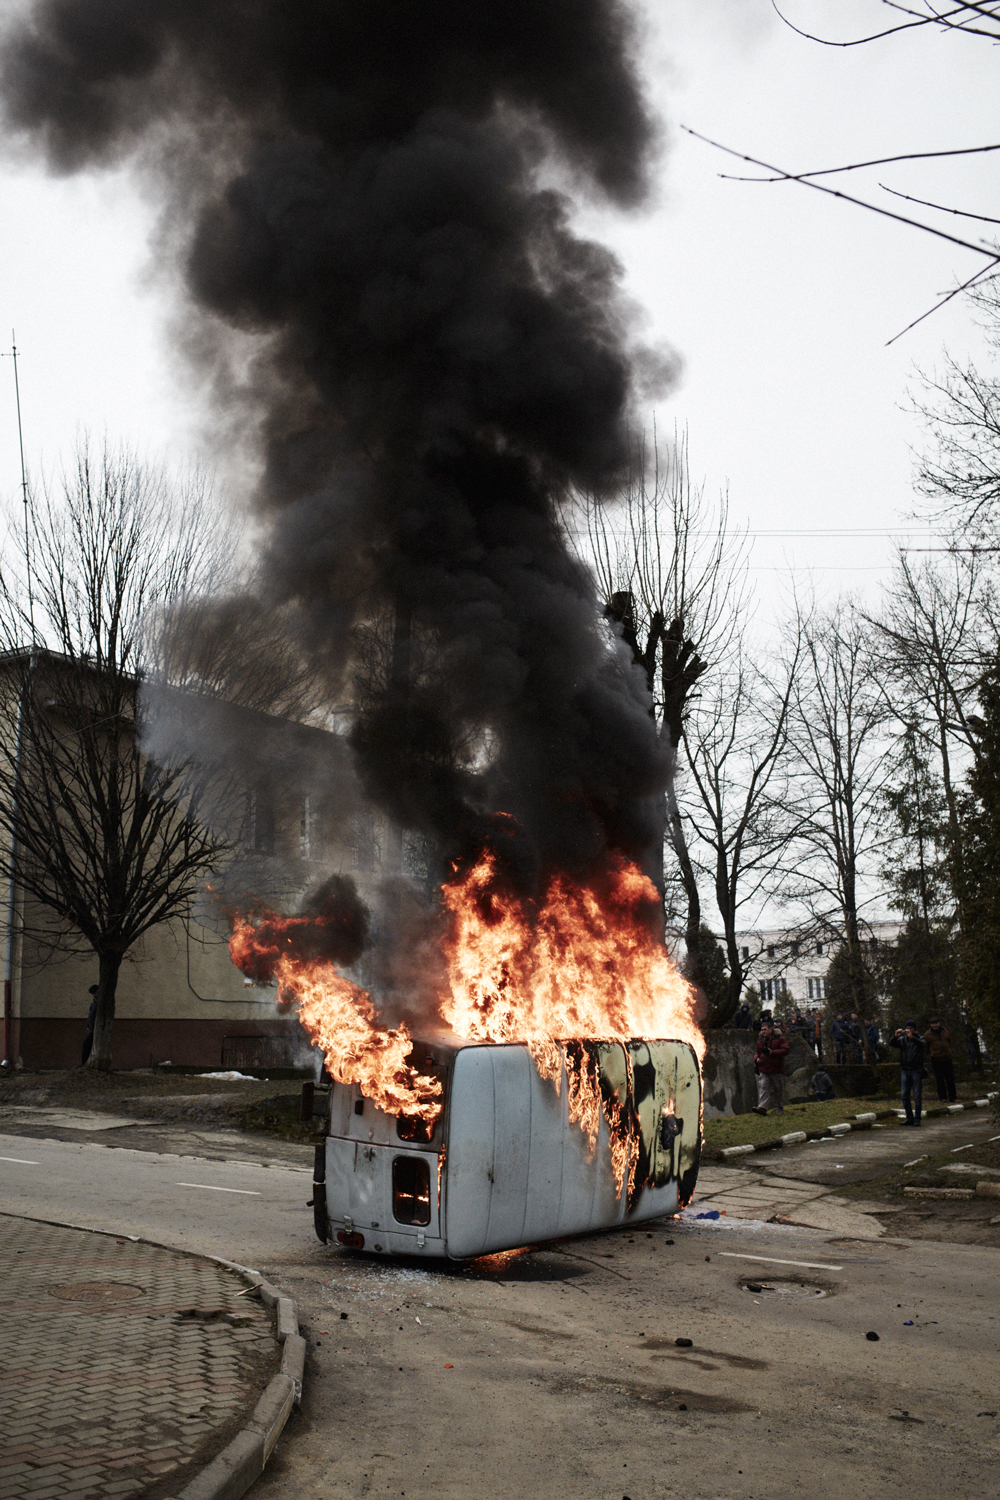 Burning Security Service of Ukraine vehicle, Kalush, February 2014